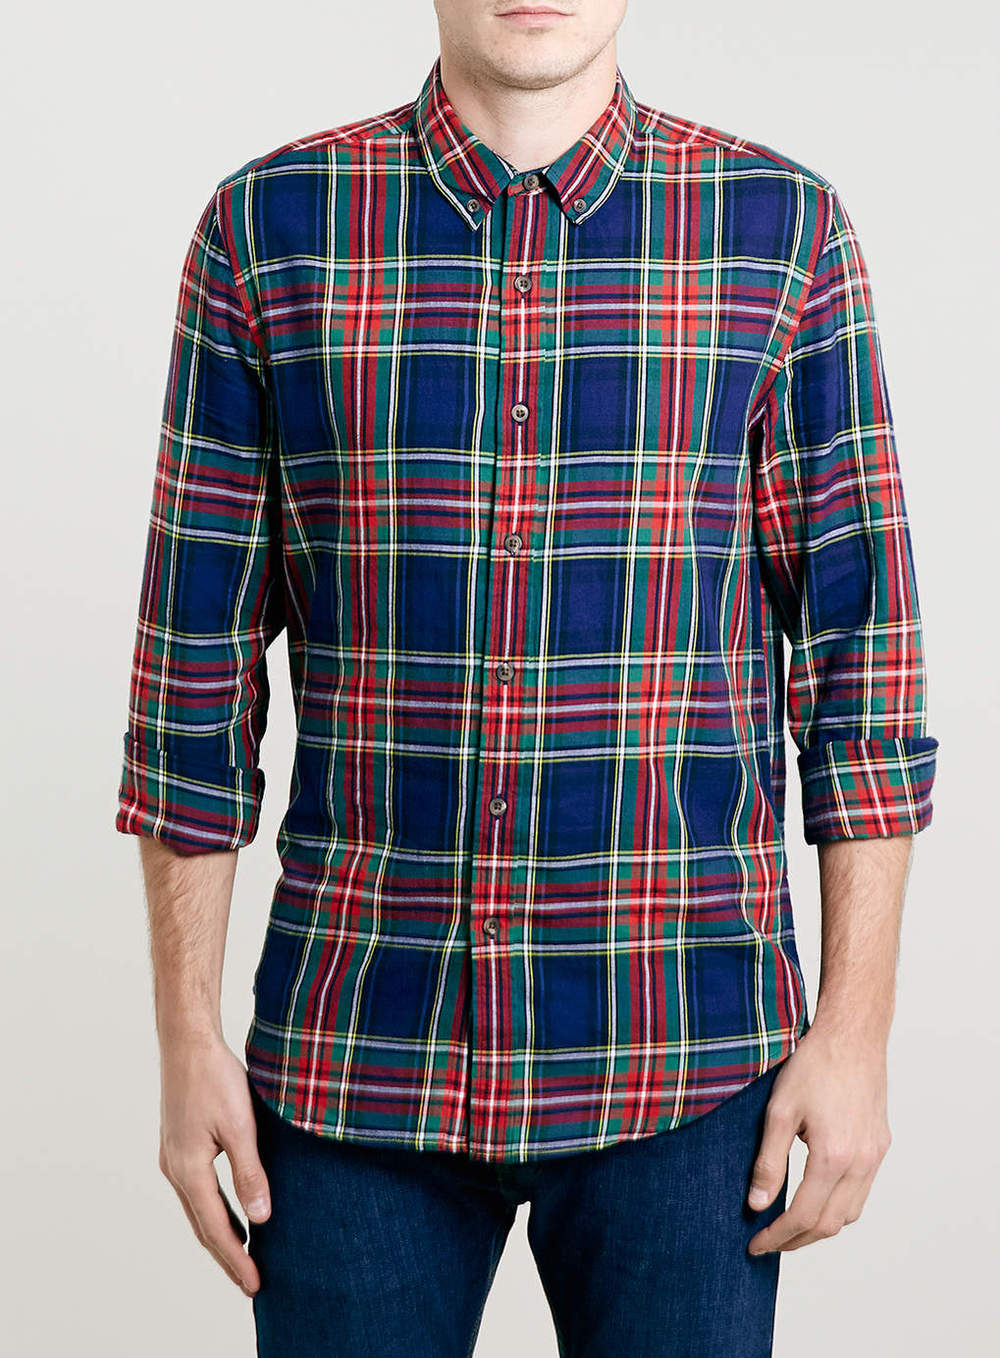 shirts for men amp guys aeropostale